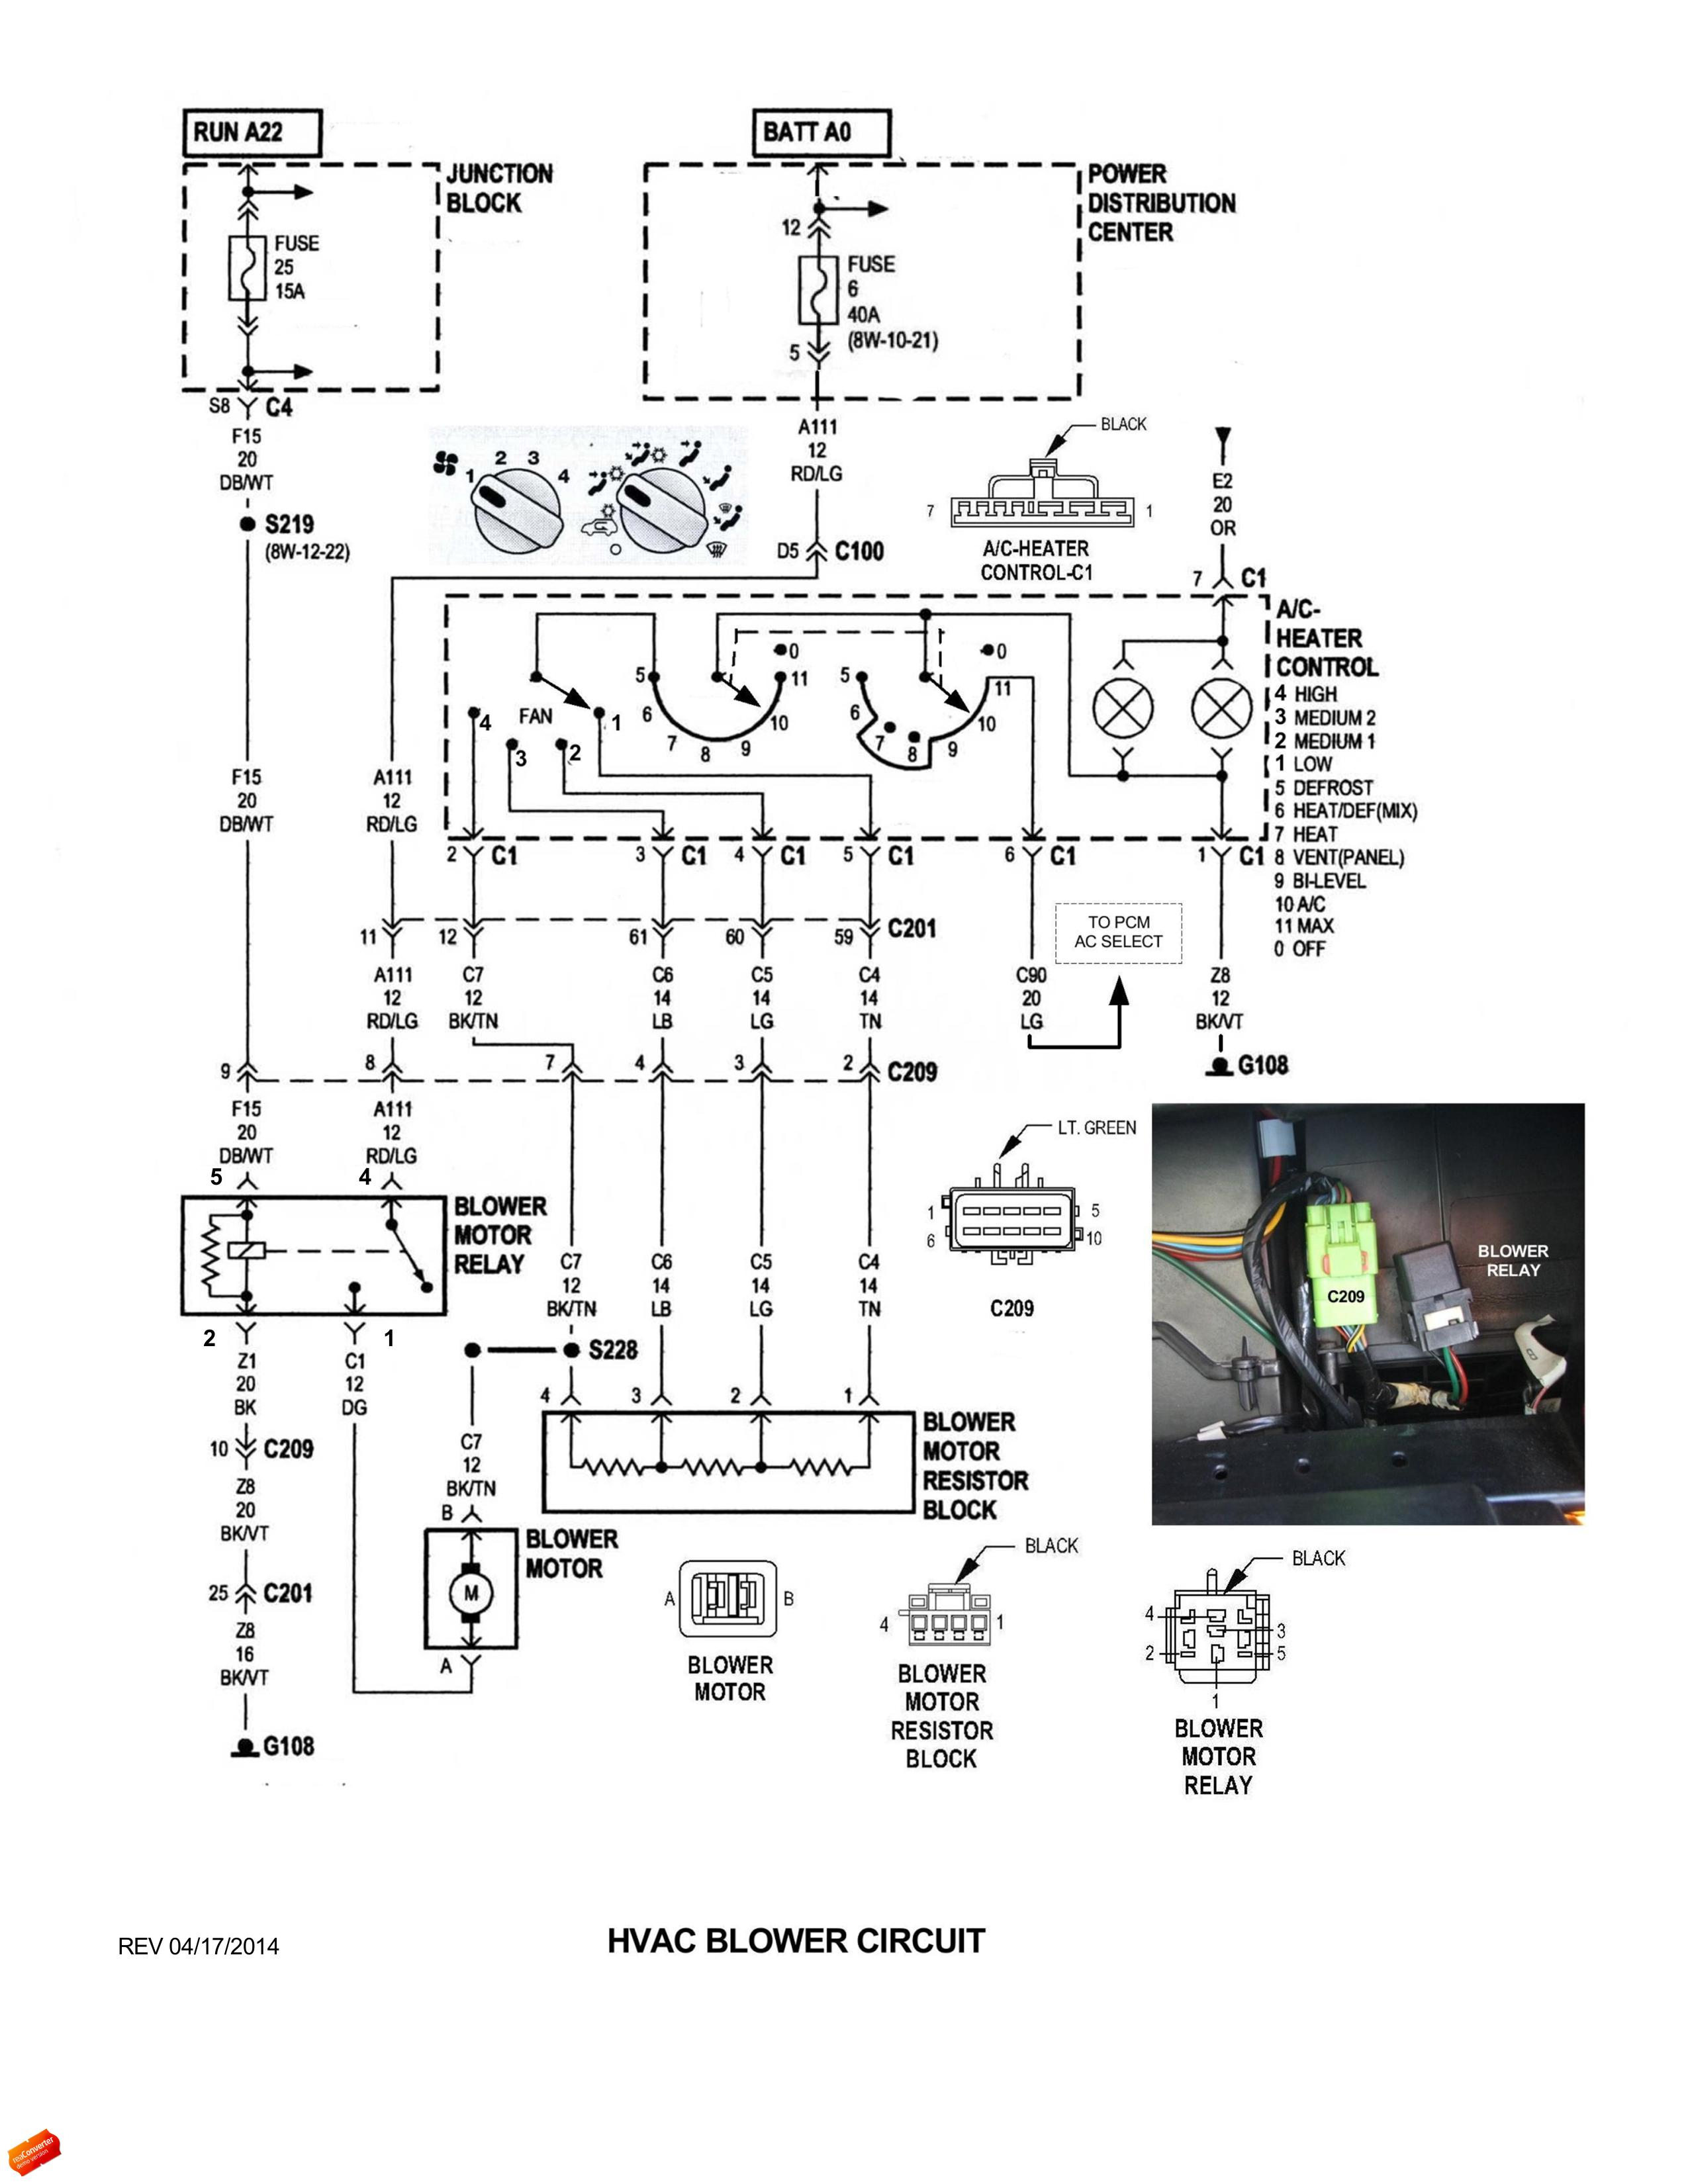 1988 Jeep Comanche 4 0 Engine Diagram. Jeep. Auto Wiring